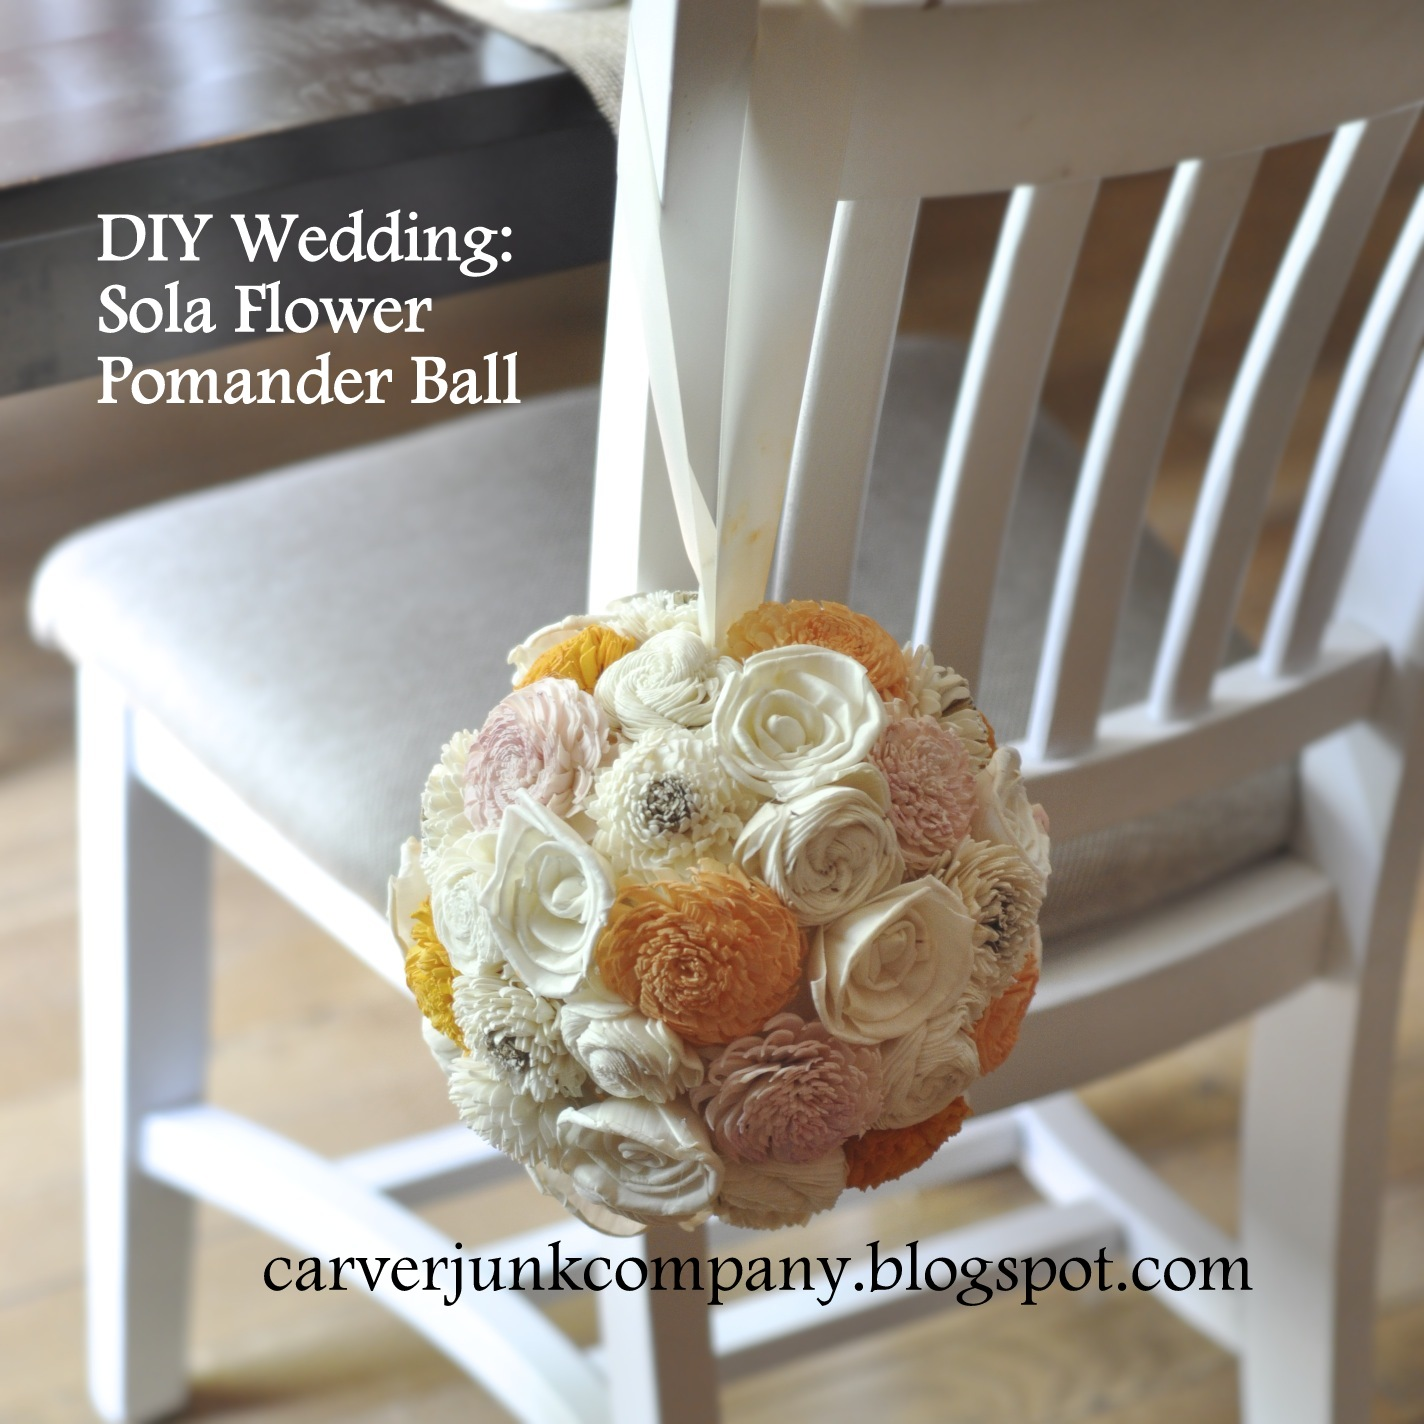 Carver Junk Company: DIY Wedding Decor: Sola Wood Flower Pomander Balls